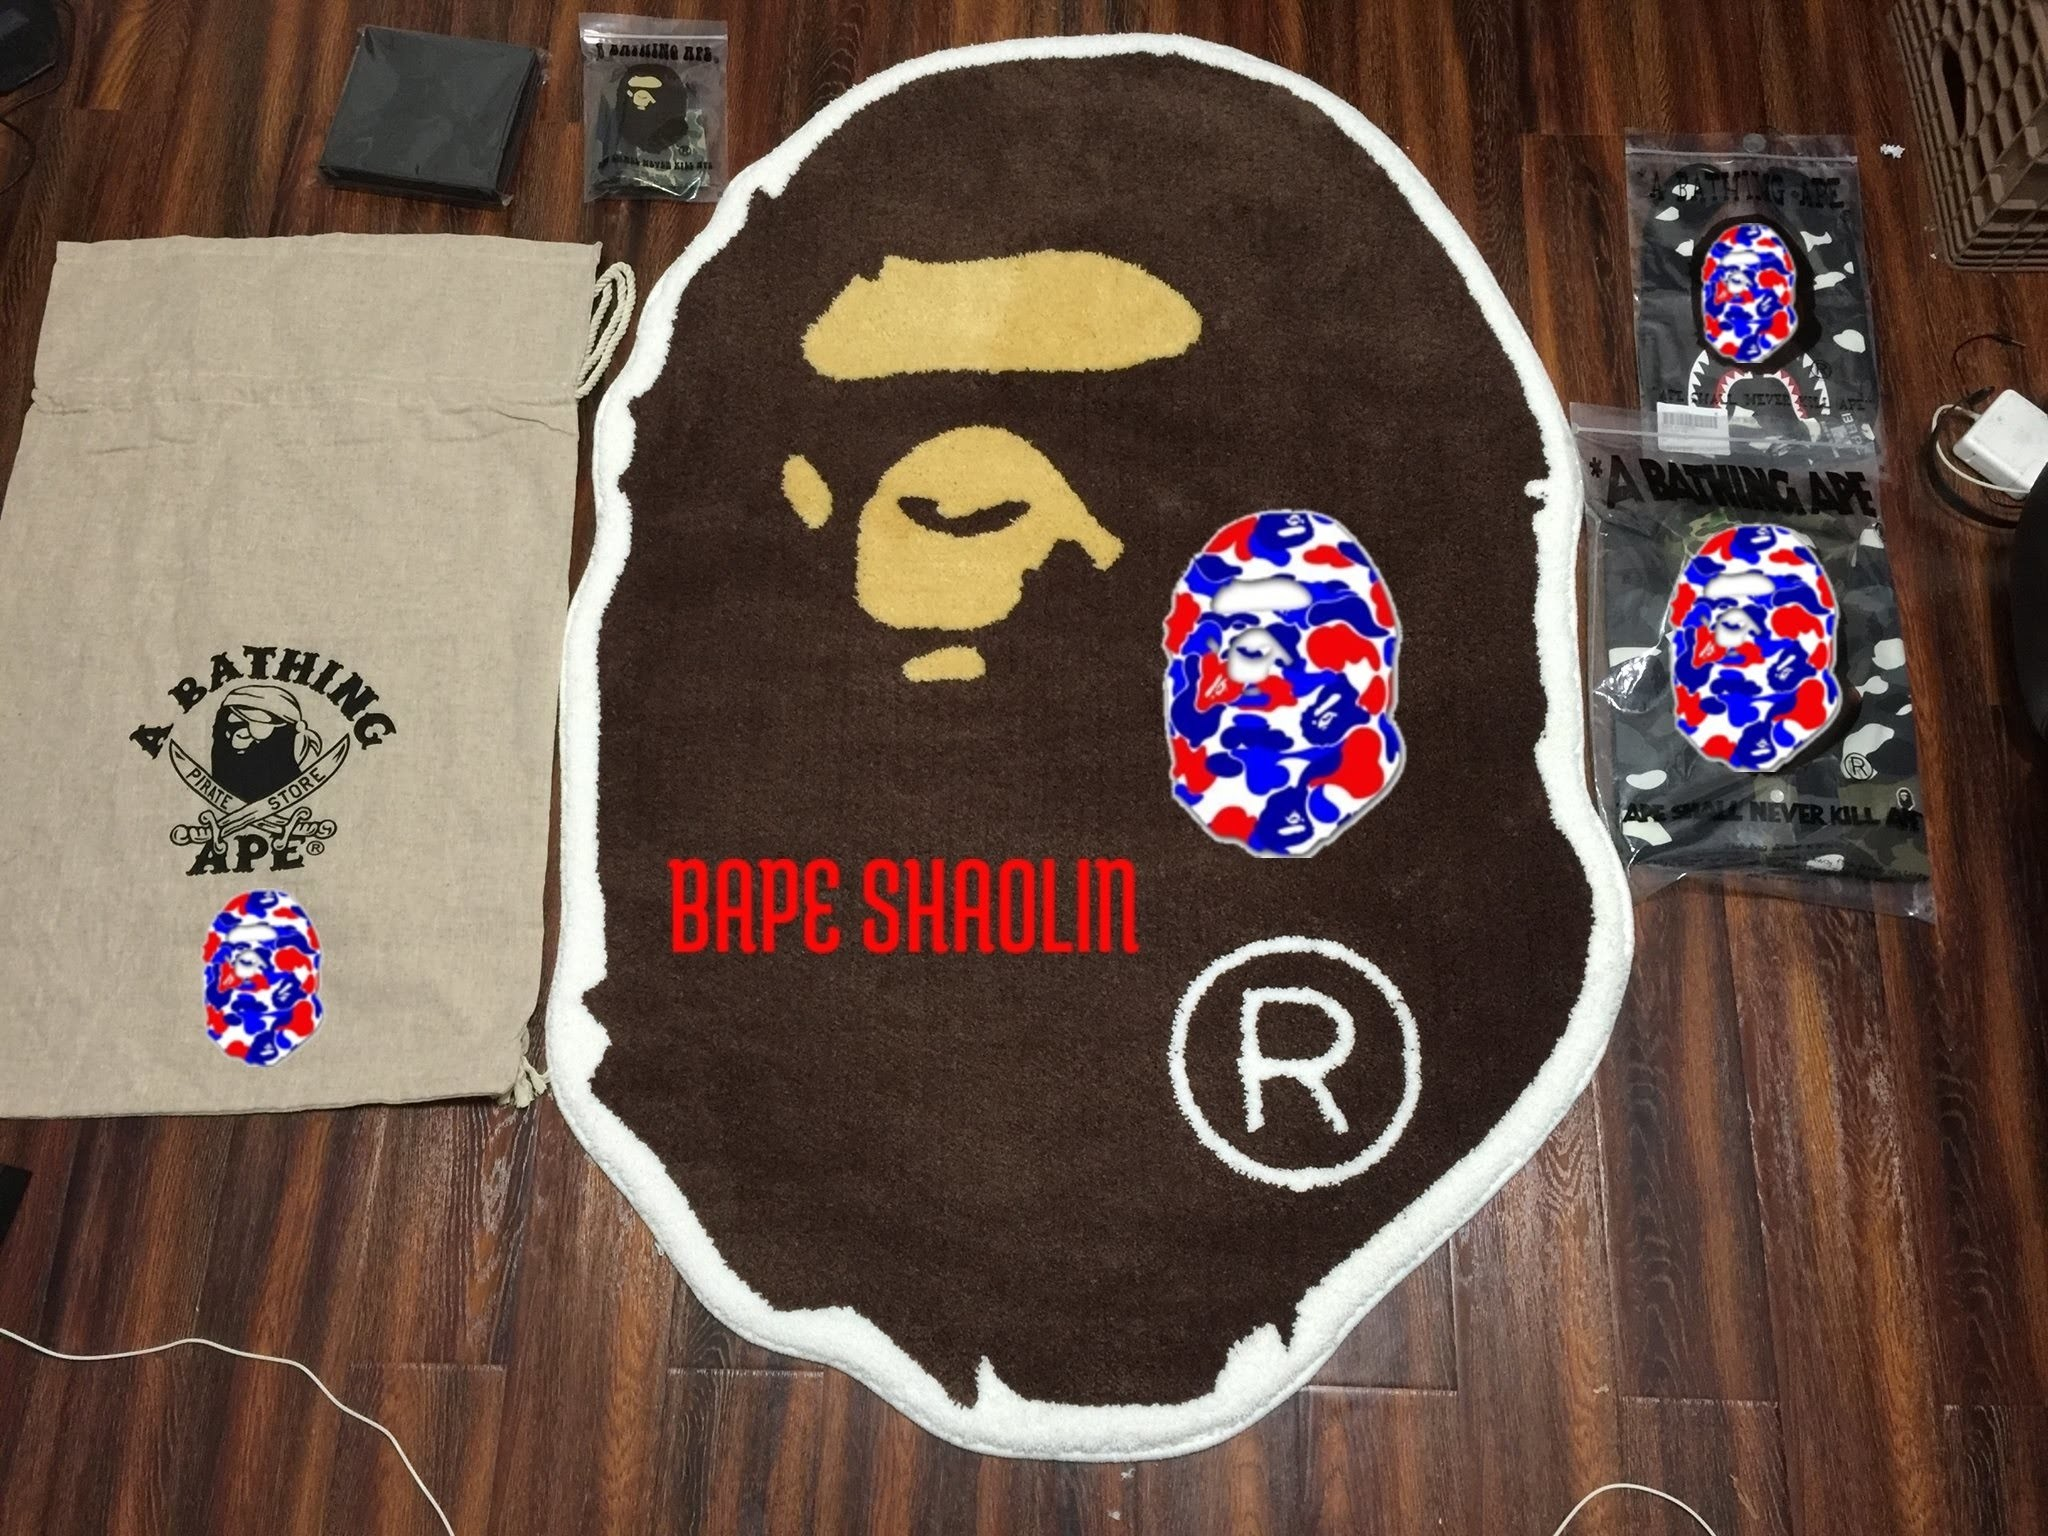 050 Bape Shaolin | Bape | A Bathing Ape | Unboxing | Clothing | Collection  | Outfit | Pickup |Review